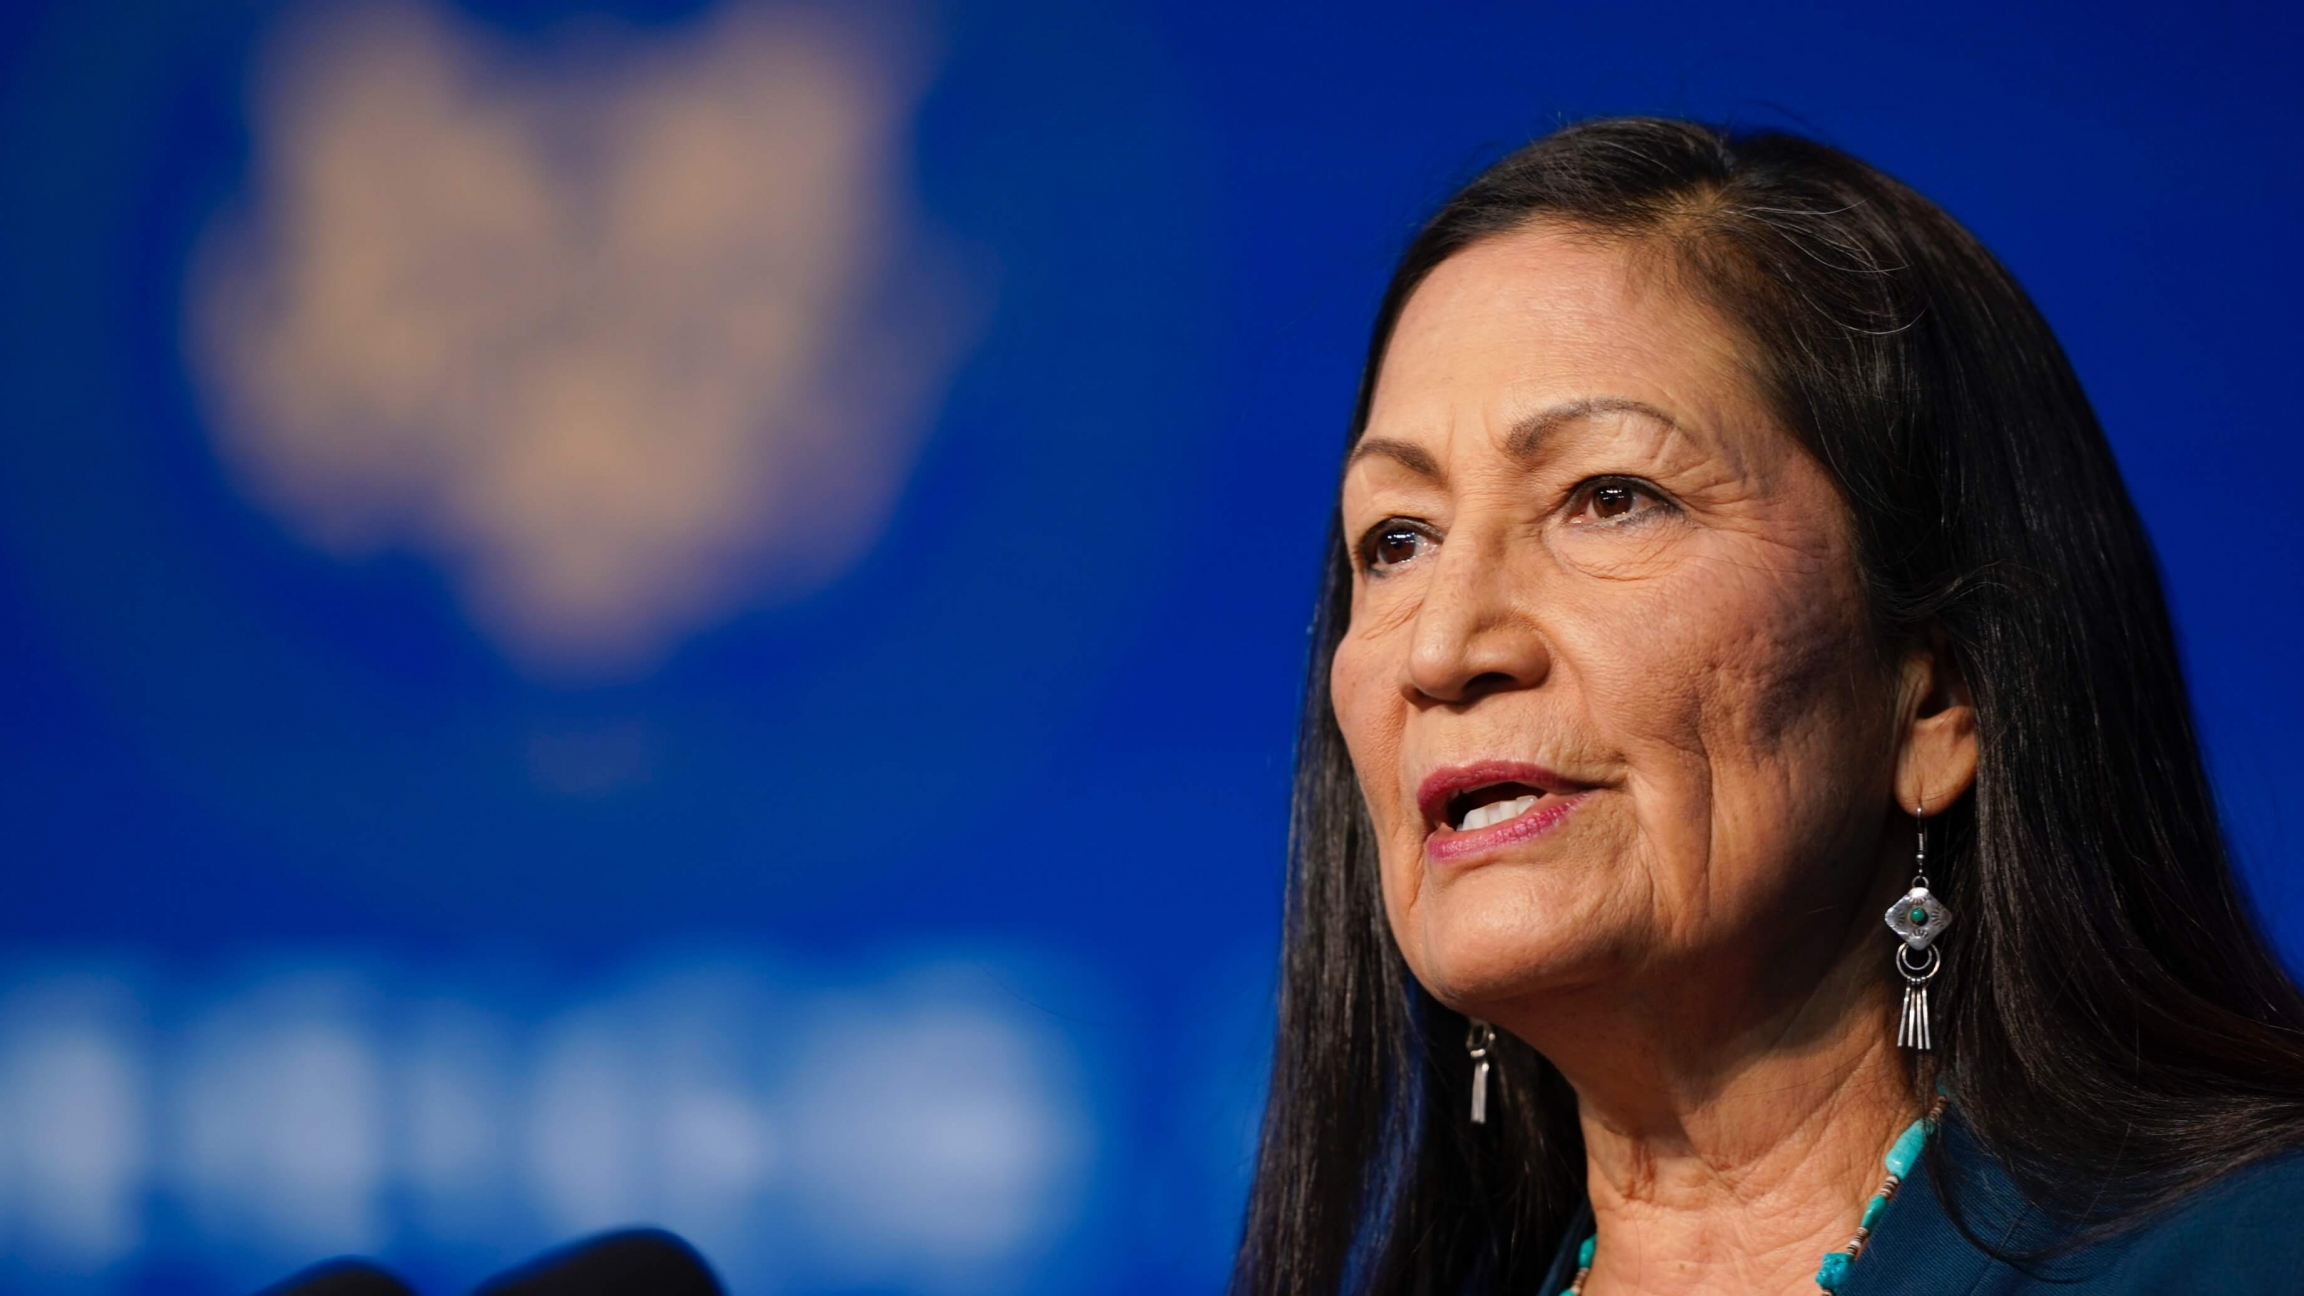 The Biden administration's nominee for secretary of interior, Democratic Rep. Deb Haaland, from New Mexico, speaks at The Queen Theater in Wilmington, Delaware,Dec. 19, 2020.